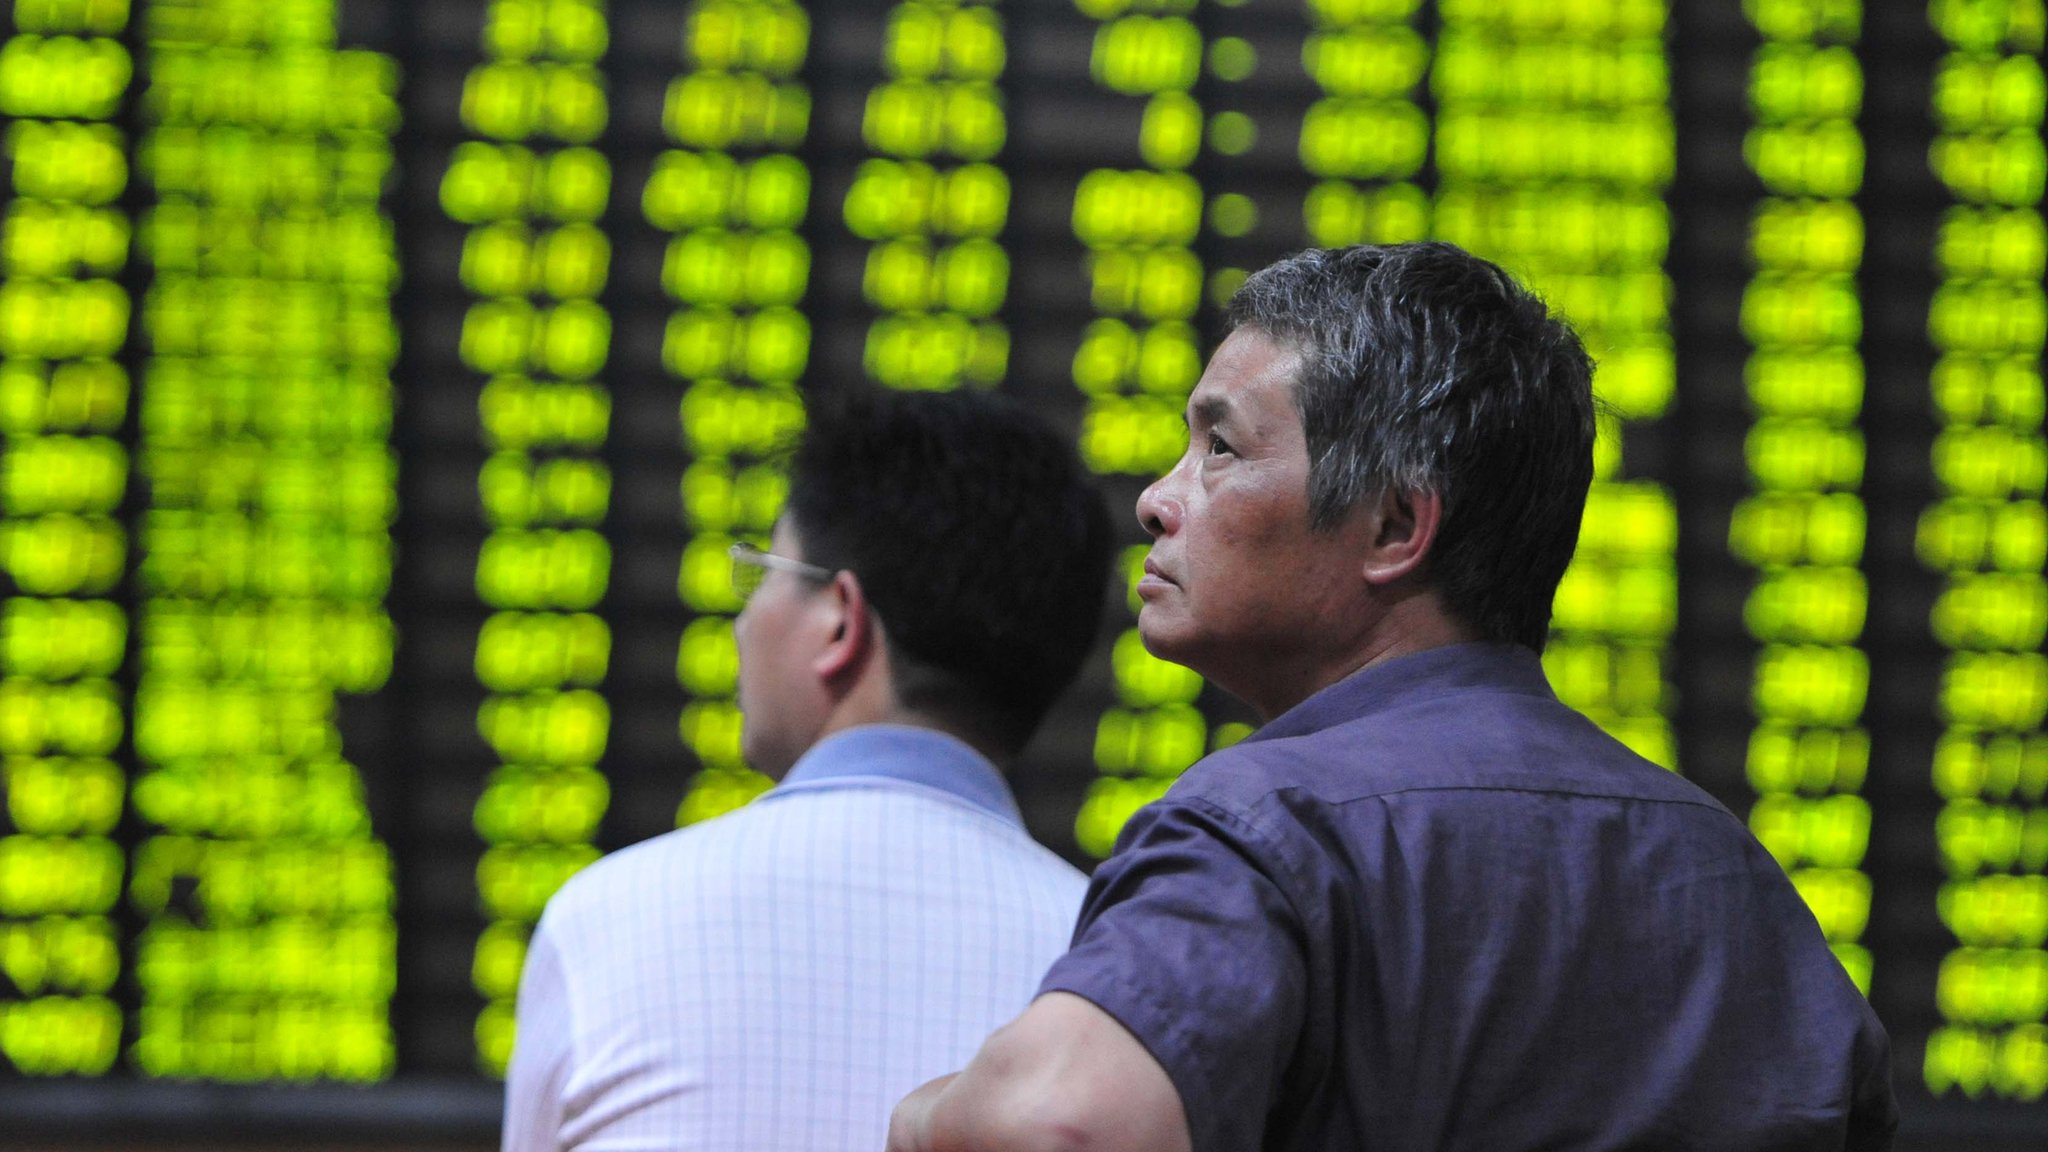 Shares in mainland China continued their slide on Tuesday, a day after the Shanghai Composite index saw its biggest one-day drop in eight years.